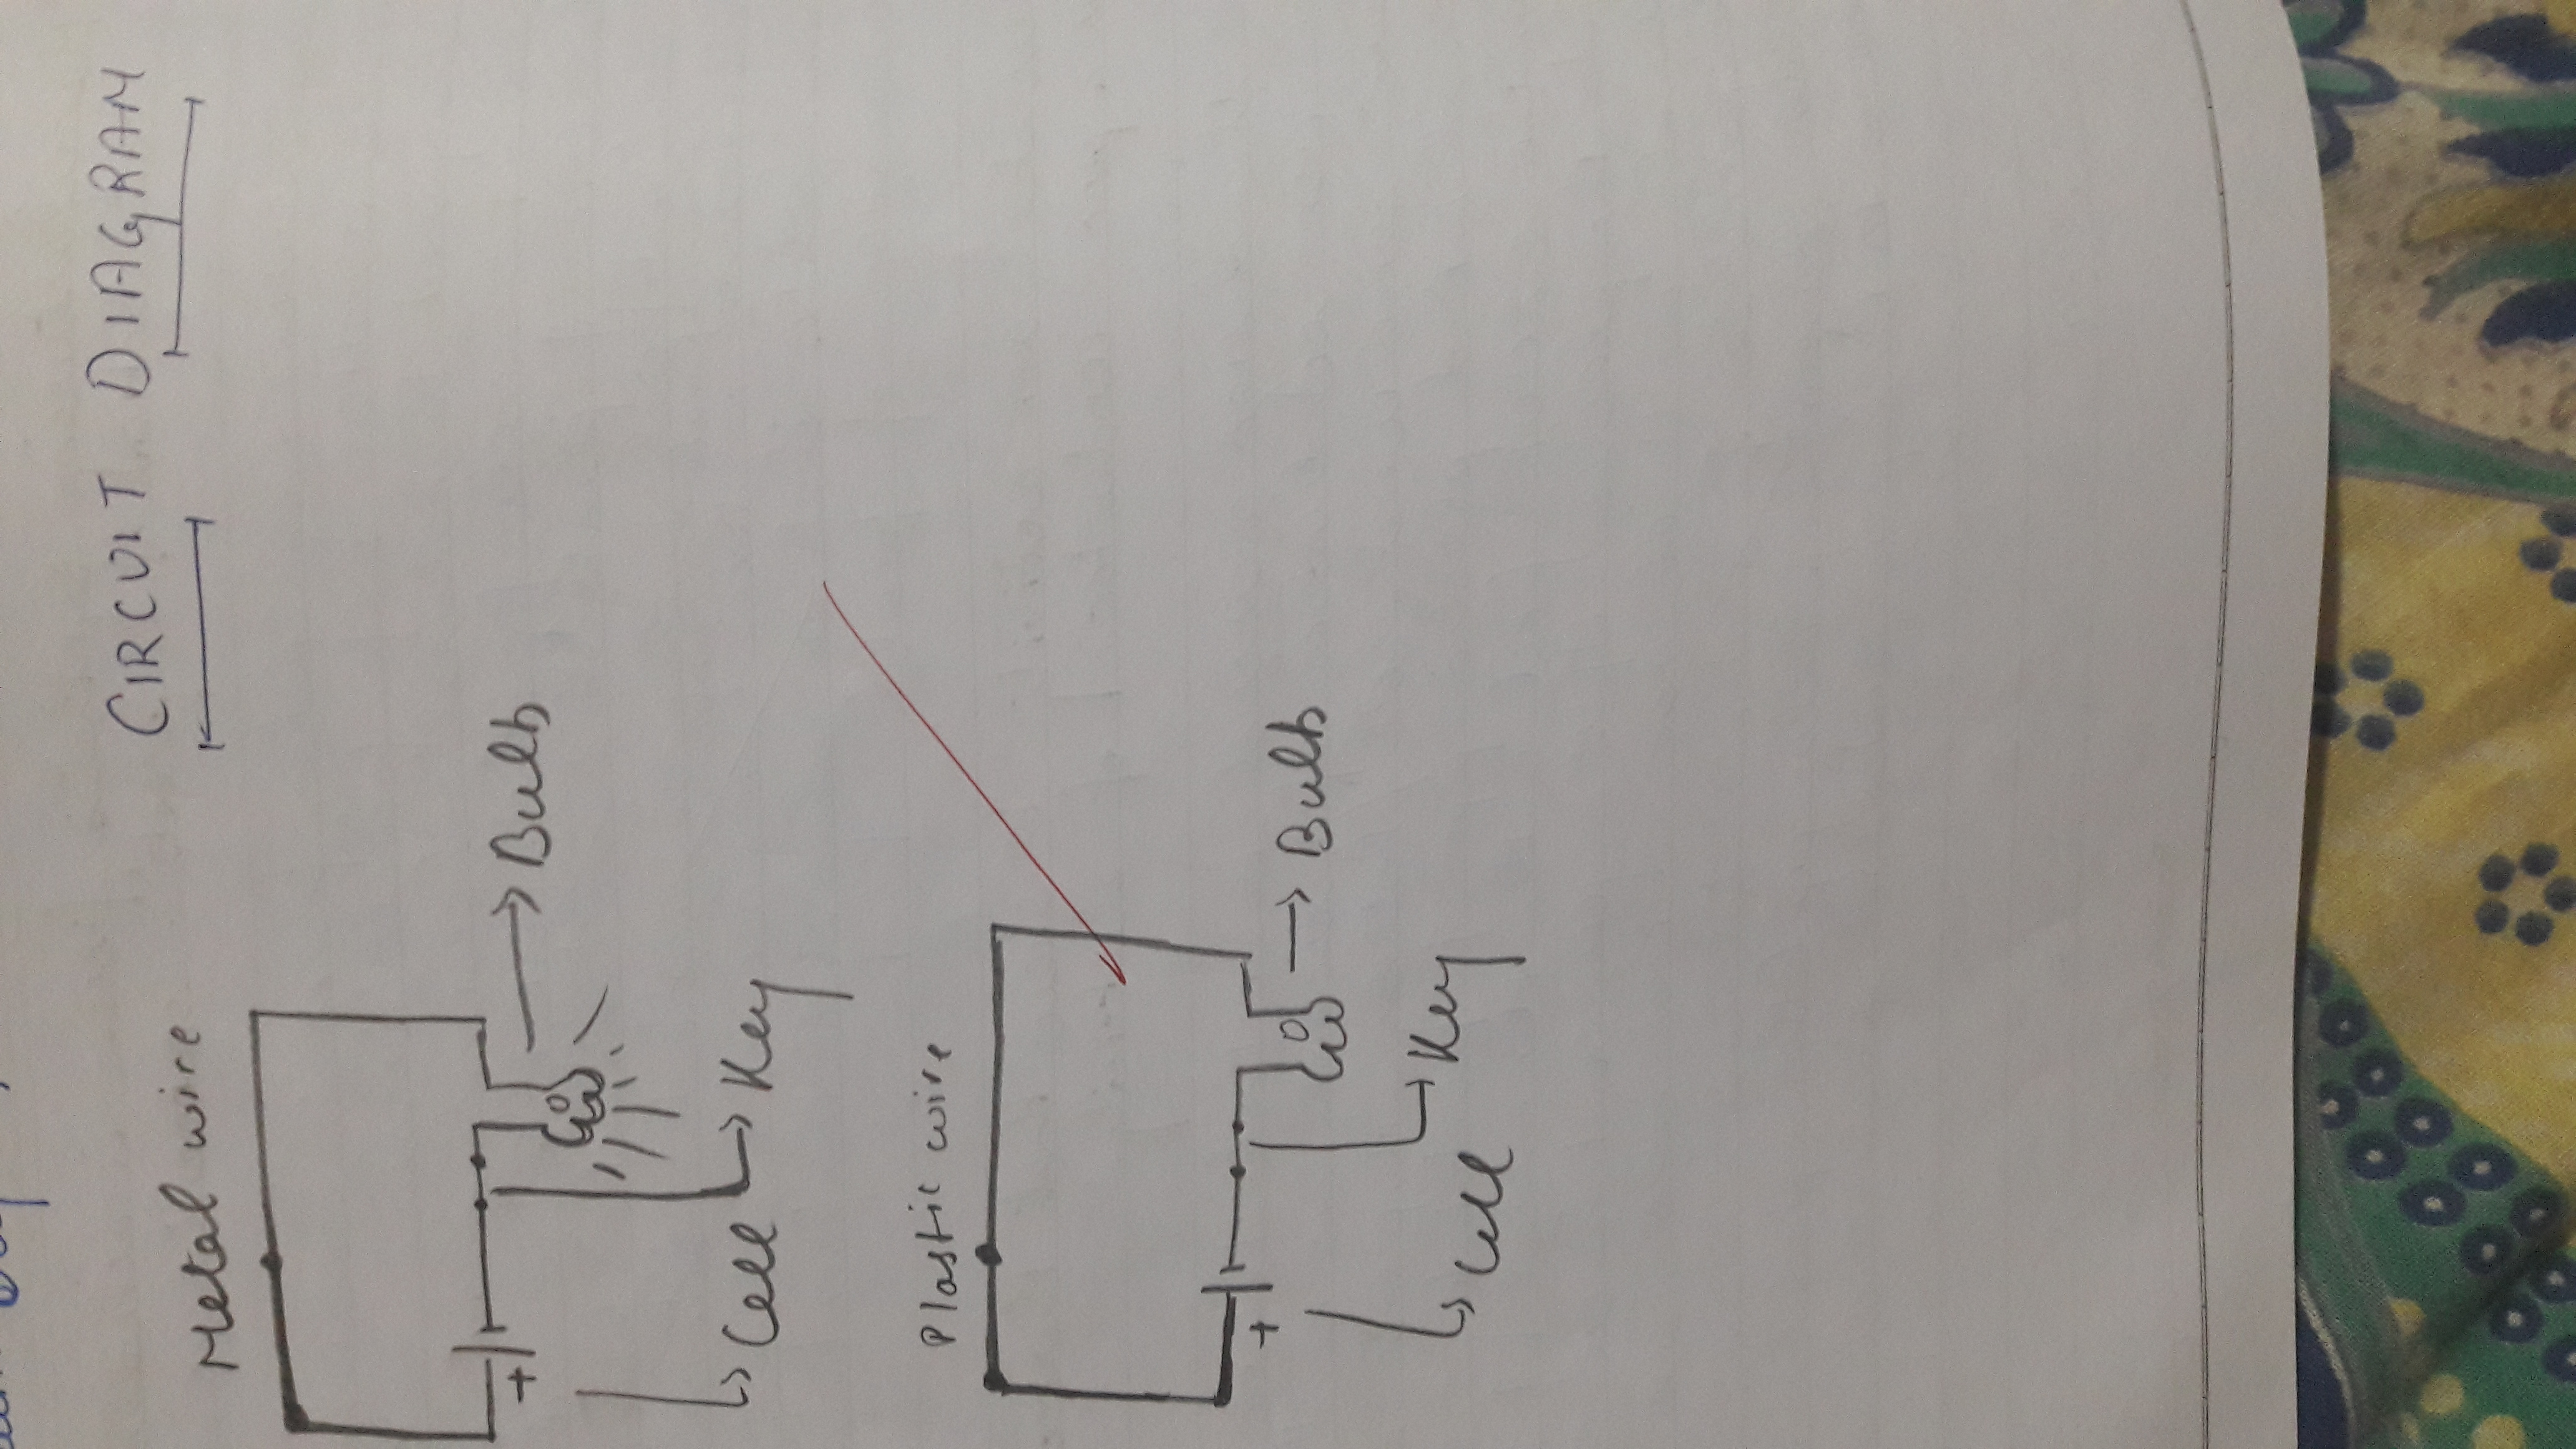 draw an electric circuit diagram consisting of a cell, a bulb and an ...